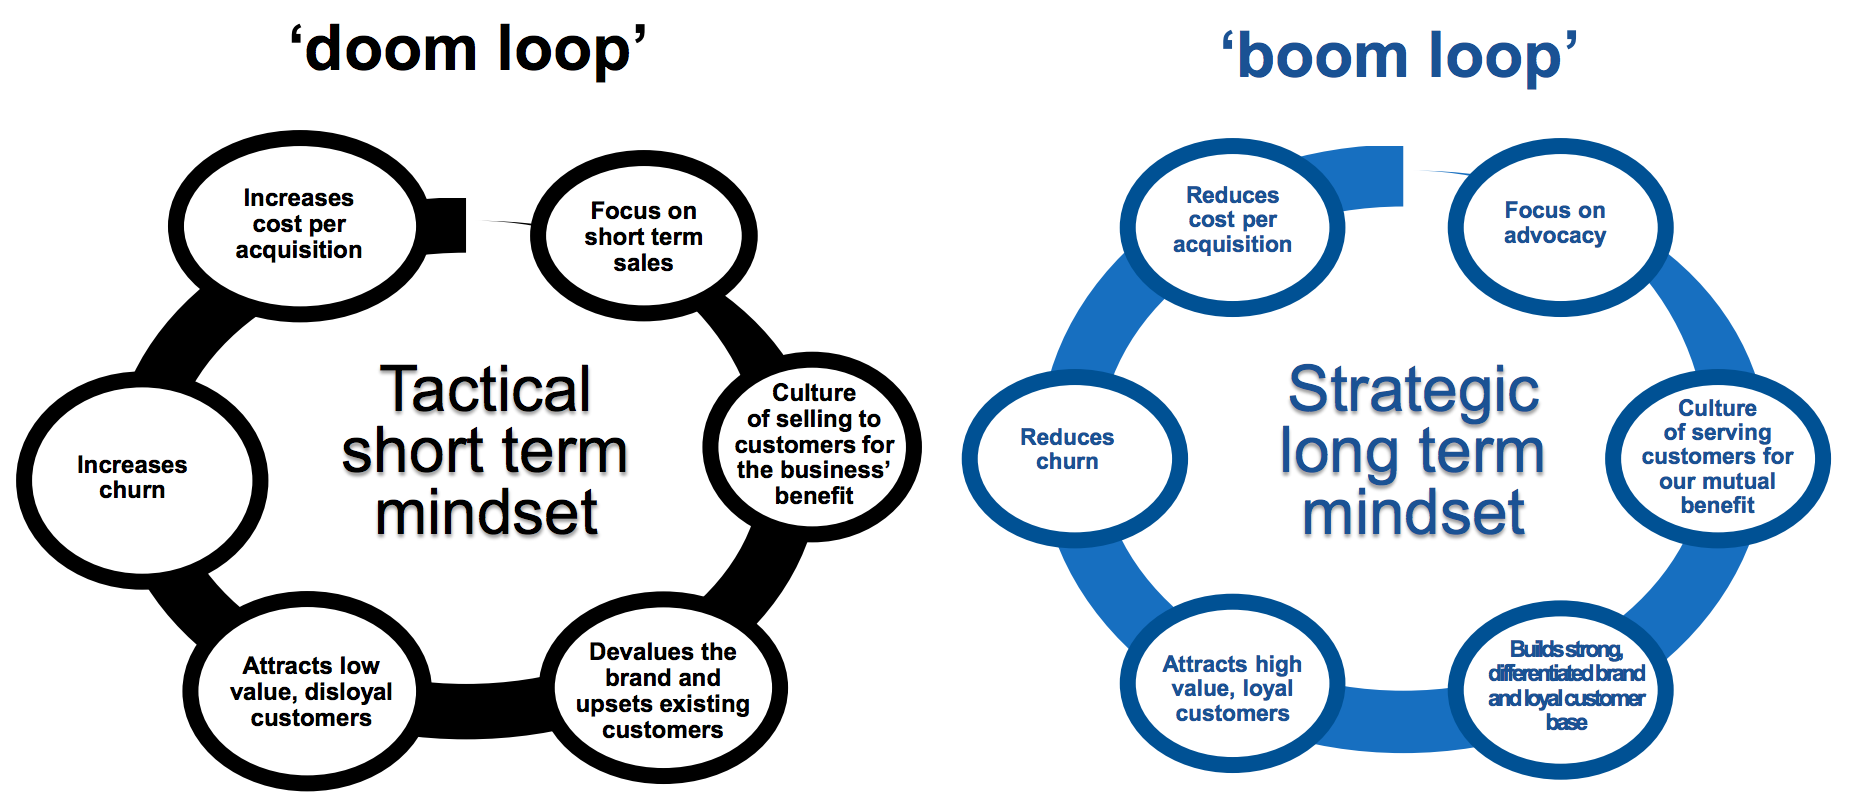 doom loop vs boom loop